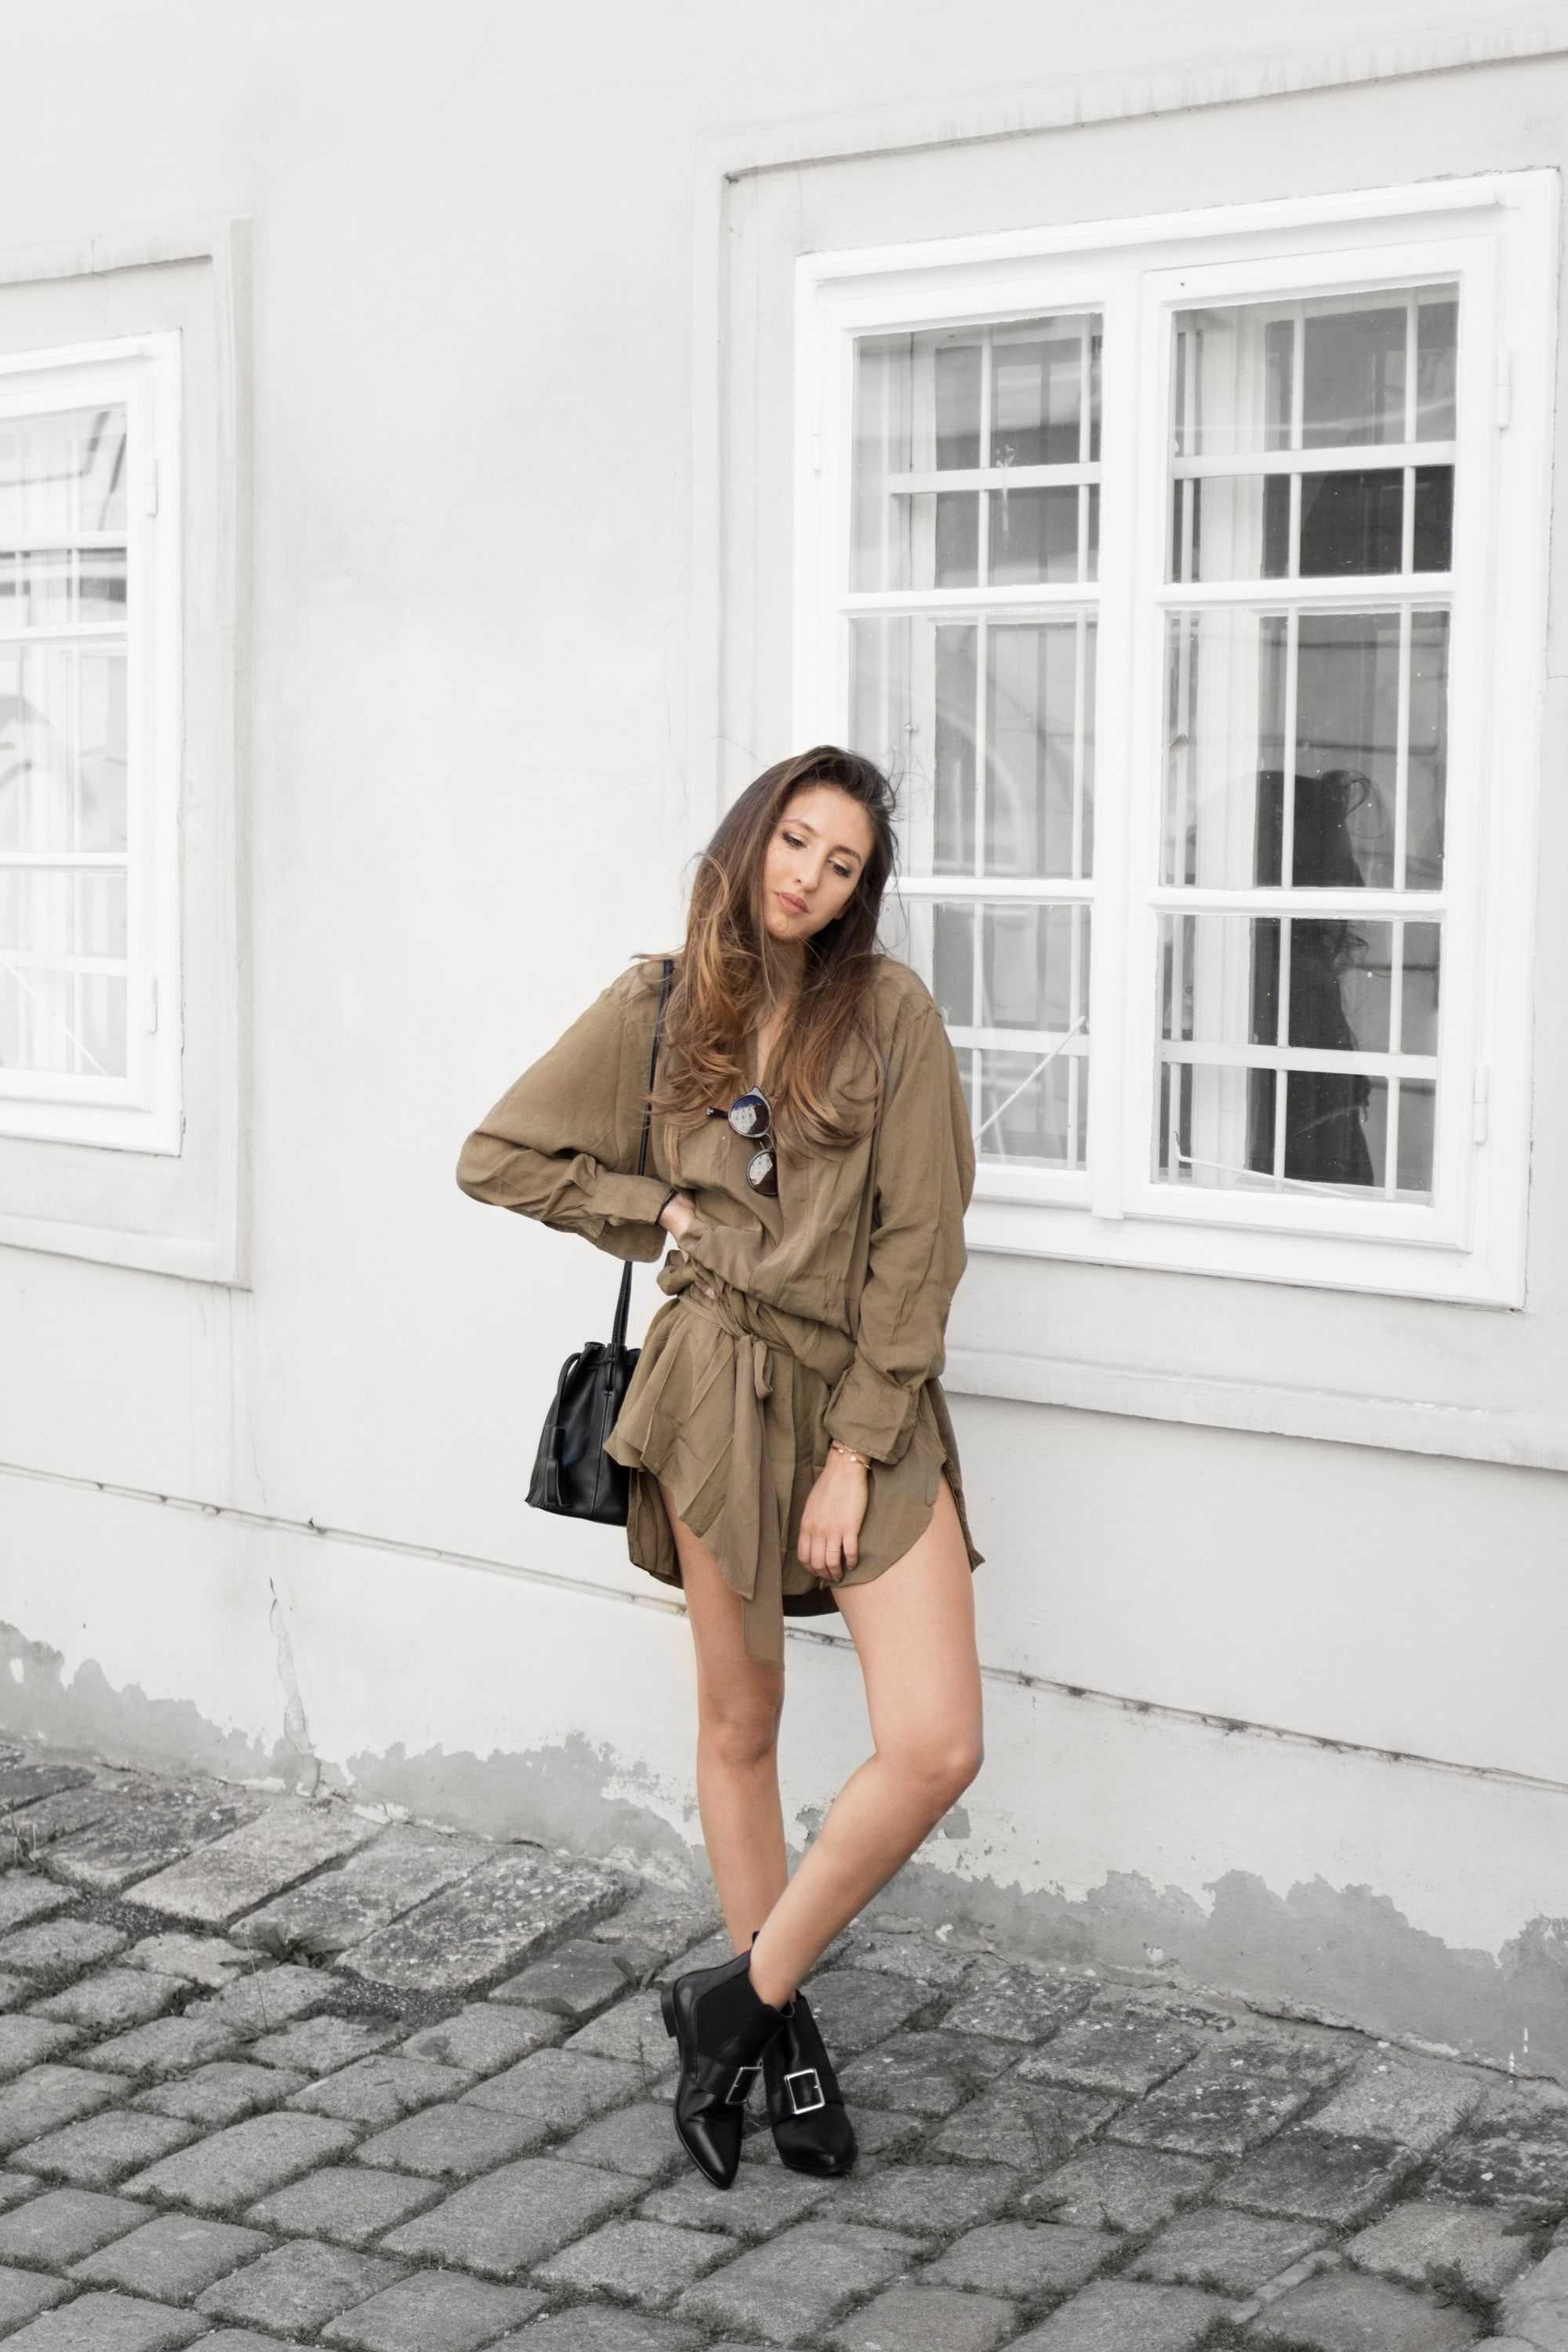 magali_pascal_khaki_dress_lenamarias6